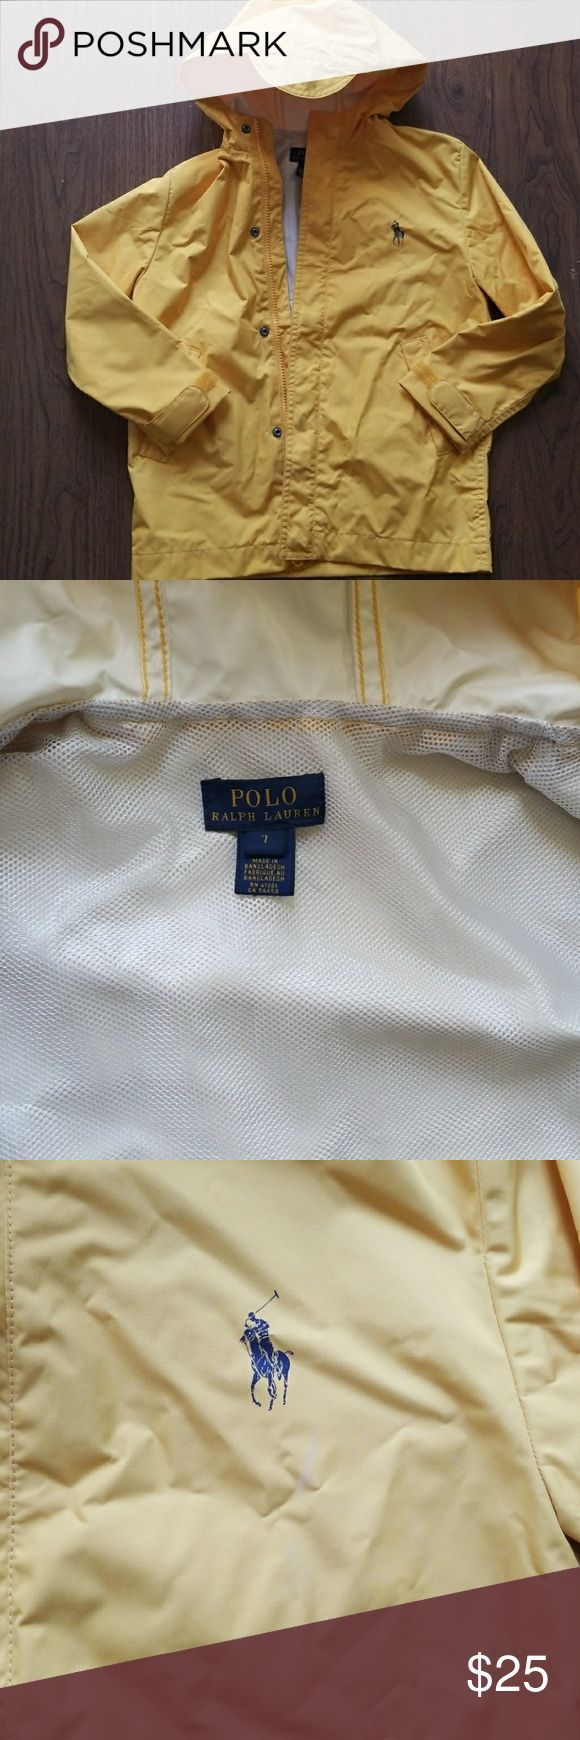 Polo Ralph Lauren little boys rain jacket Yellow size 7 hooded rain jacket with mesh lining. Very slight areas of discoloration. Overall, in good condition. Son's name was written on interior of jacket. Polo by Ralph Lauren Jackets & Coats Raincoats